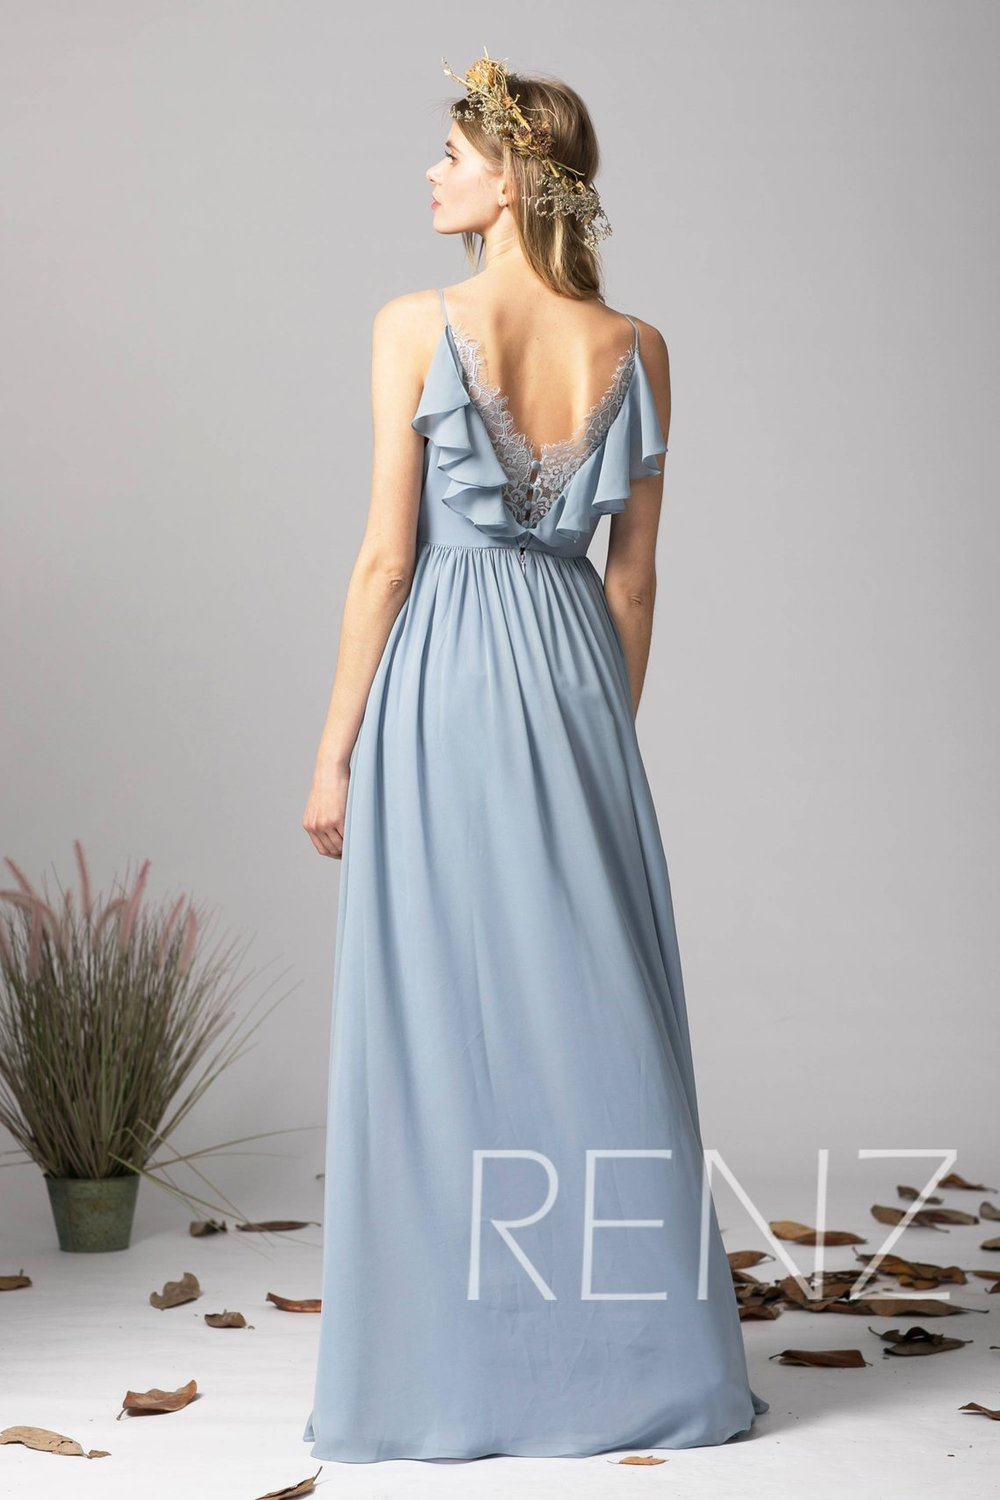 12 coastal ideas bridesmaids dusty blue dress